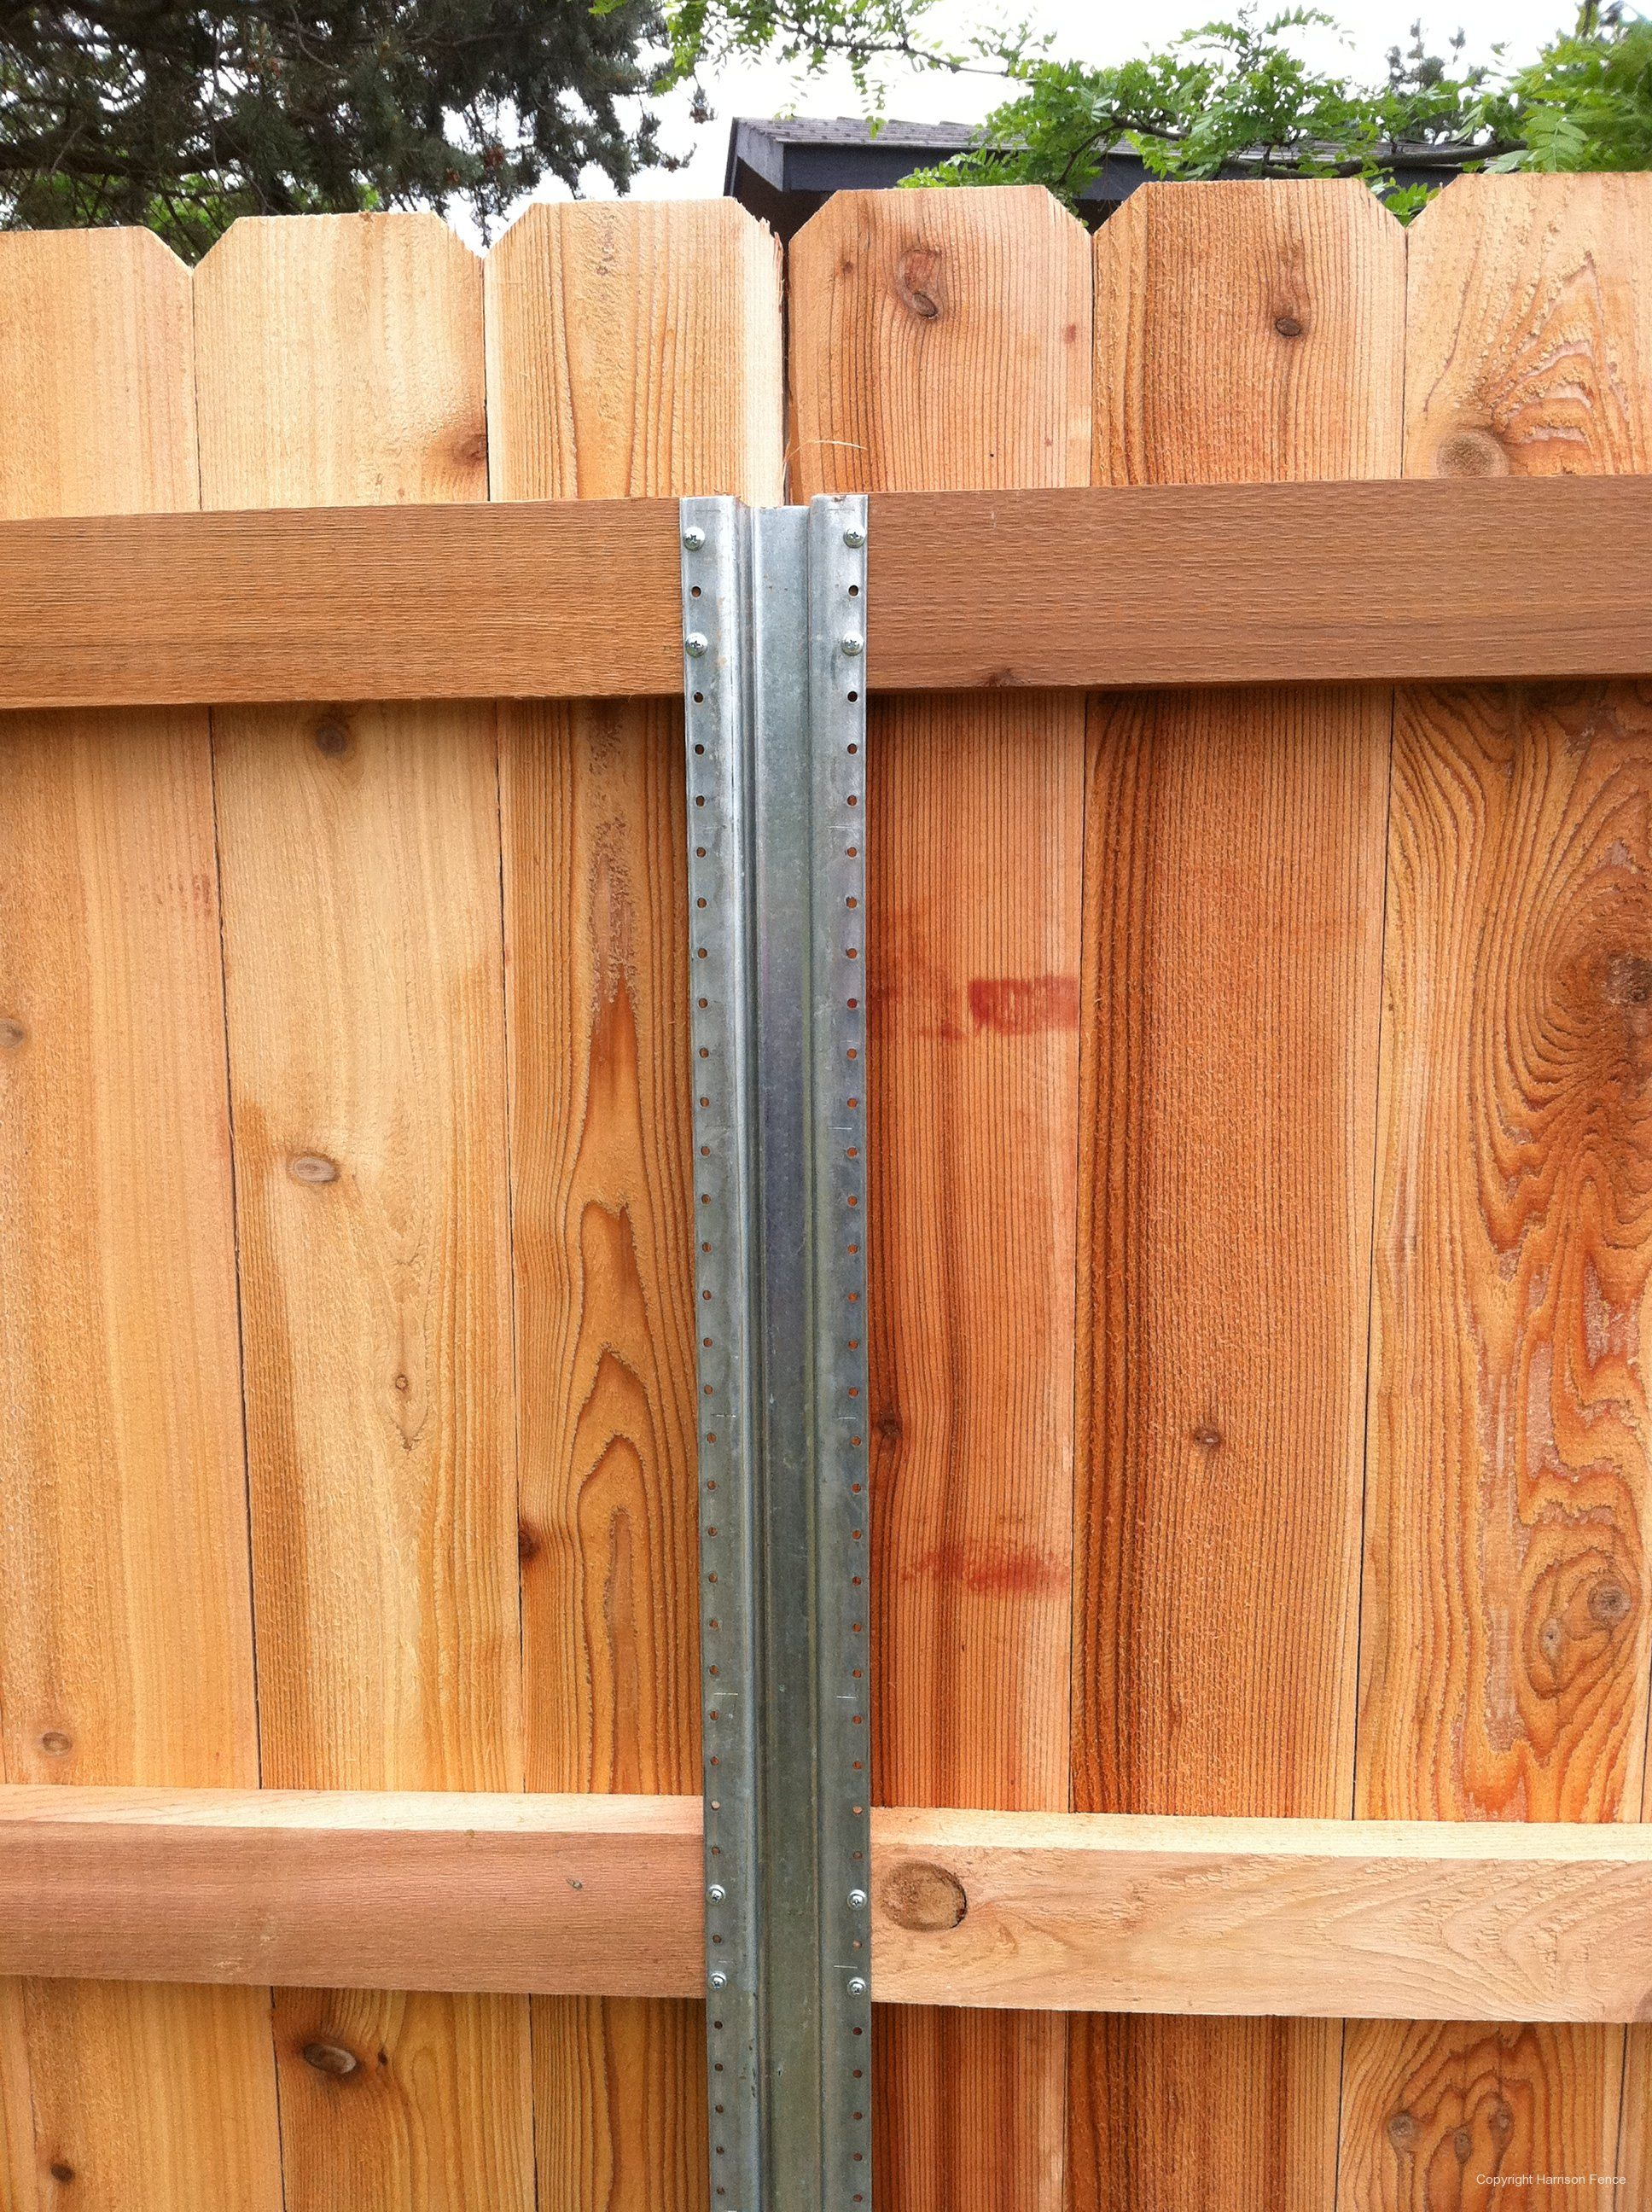 Metal Fence Post For Wood Fence Yard Wood Privacy